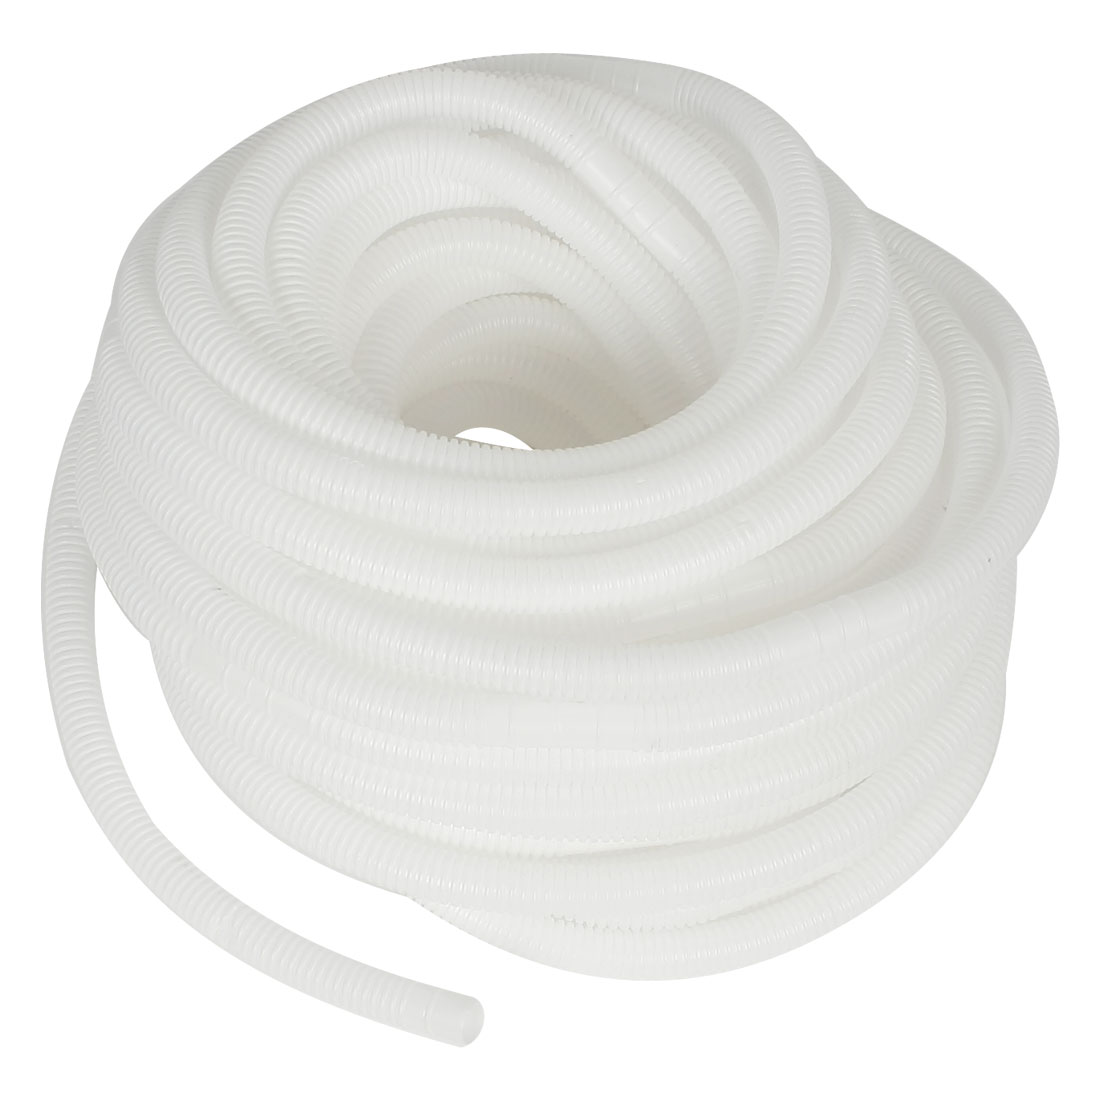 82Ft 25M Wave Type Flexible White Plastic Drain Hose Pipe Tube for Faucet